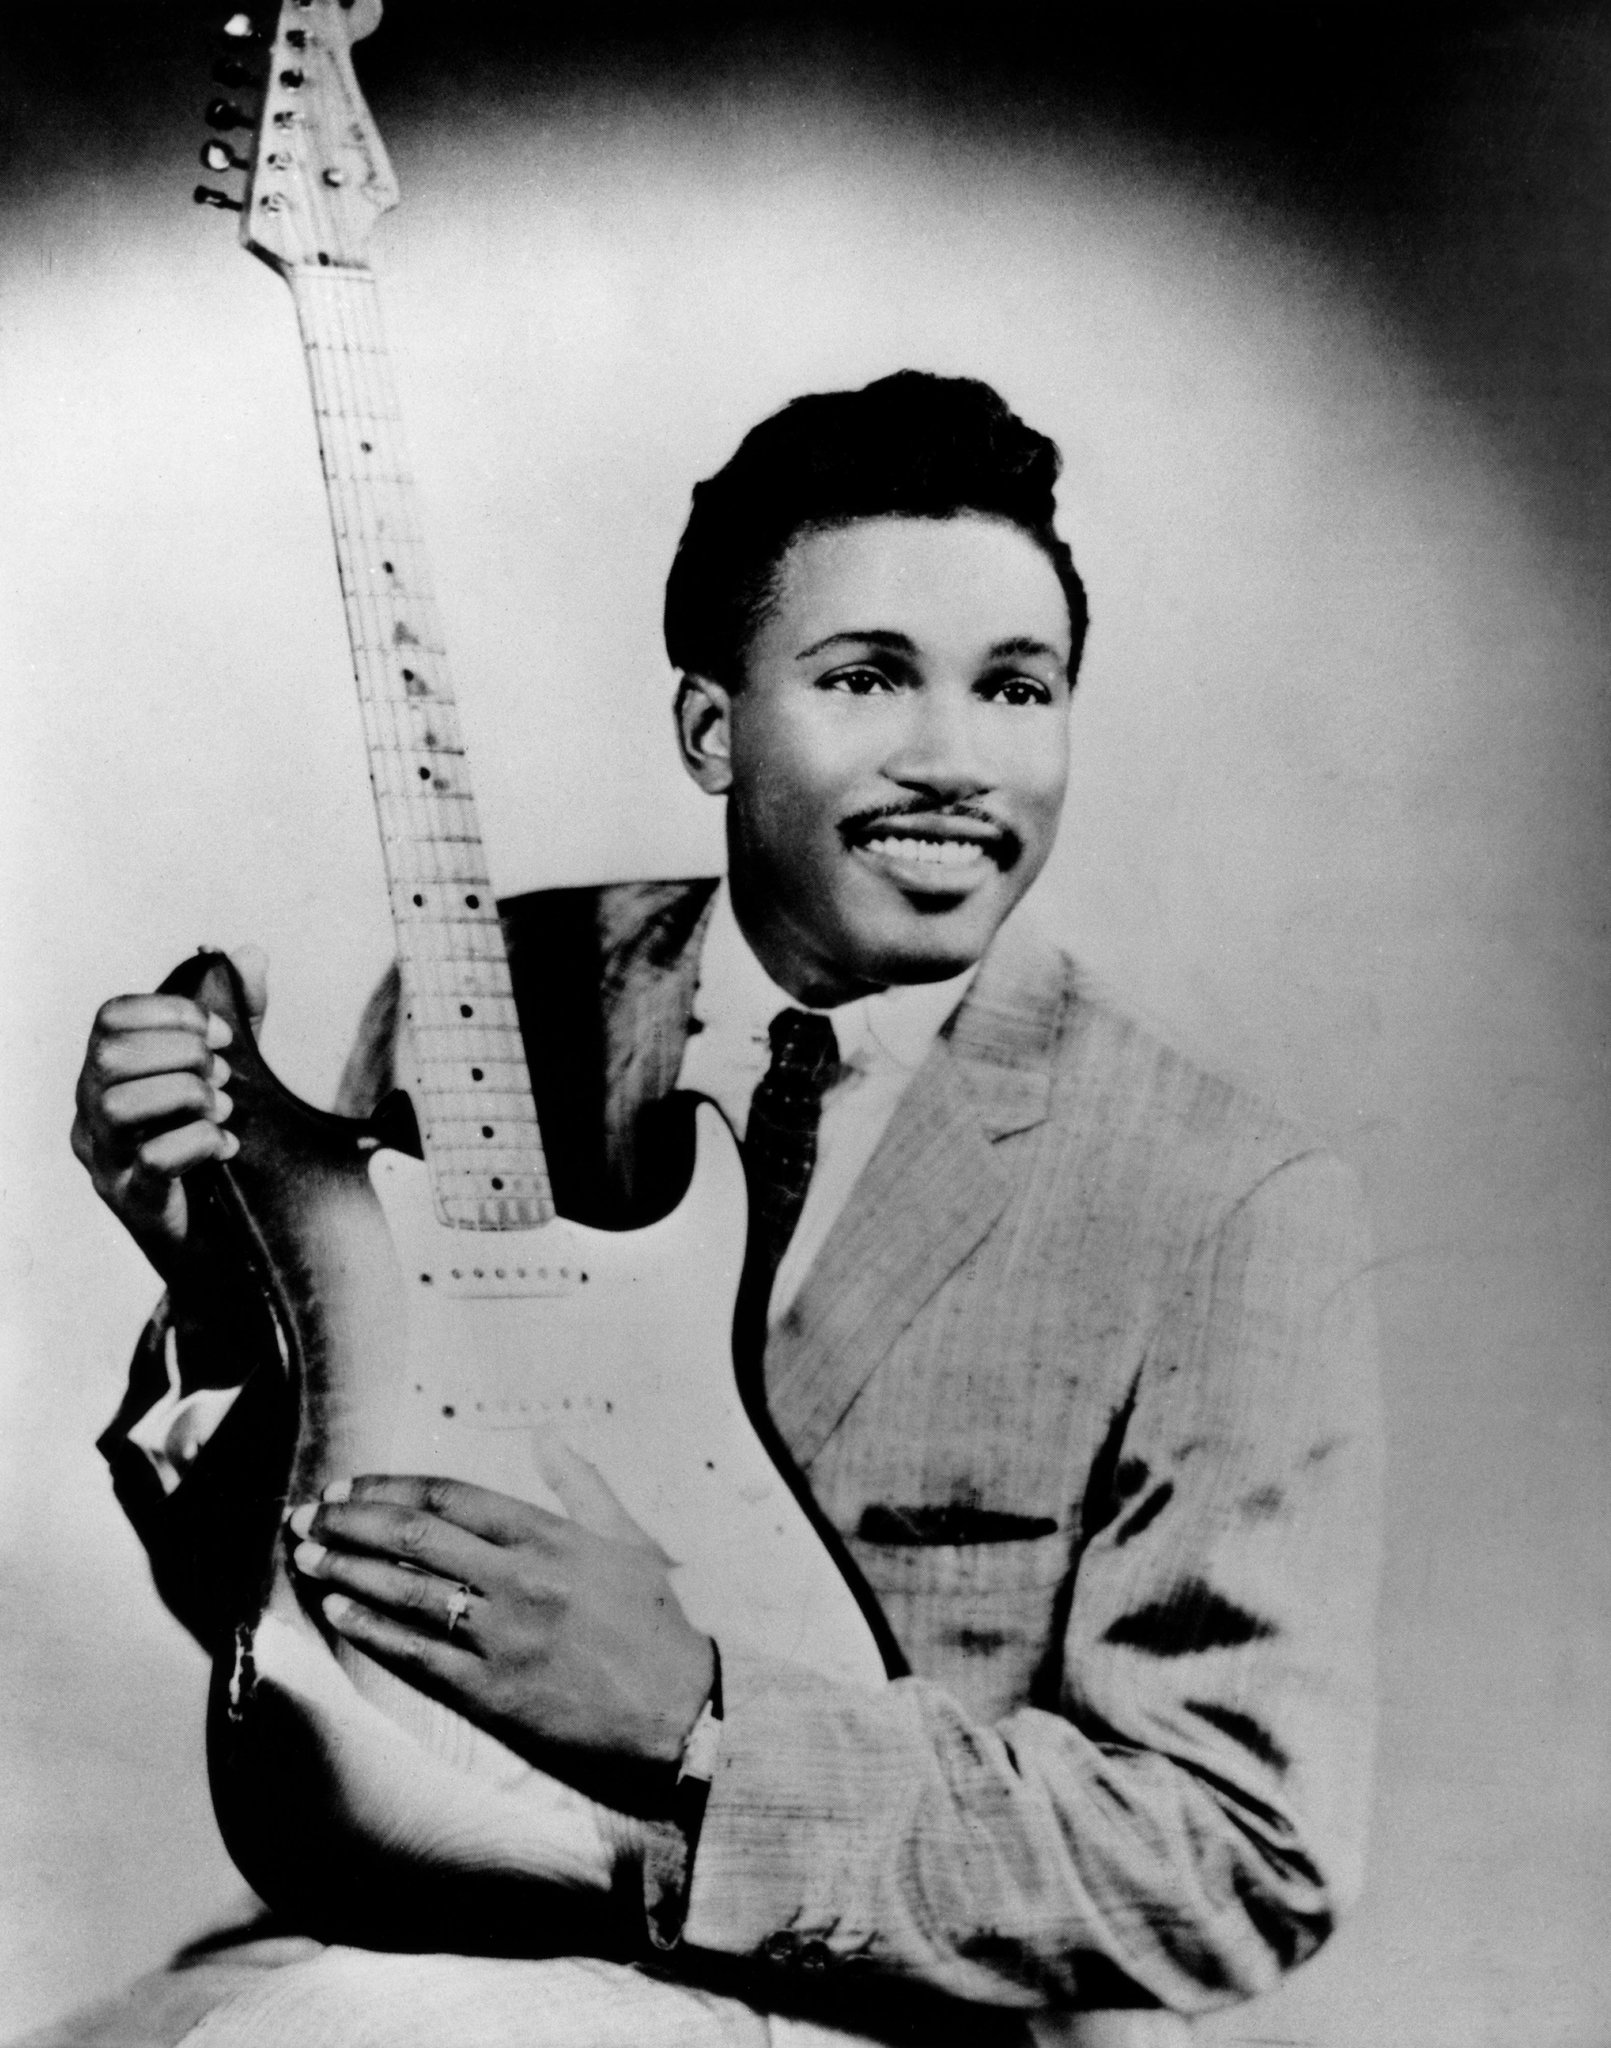 Top 10 Blues Songs Of All Time